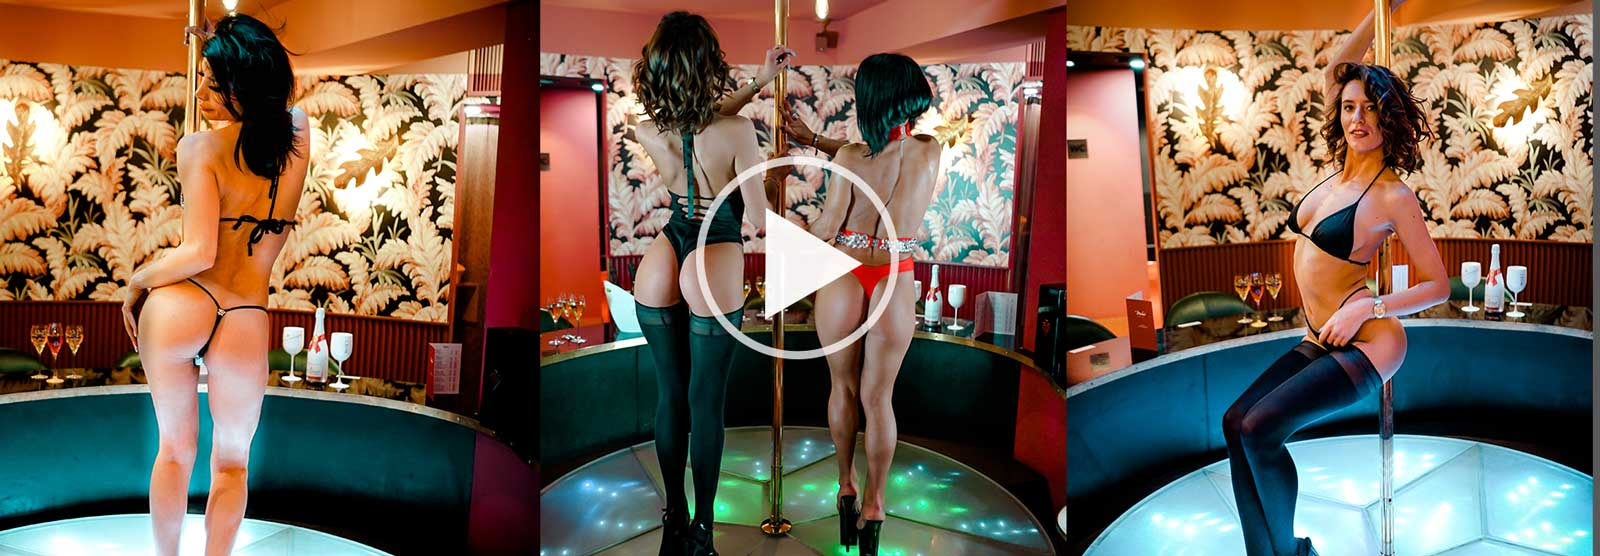 Neues Video – Madam Strip Club Munich